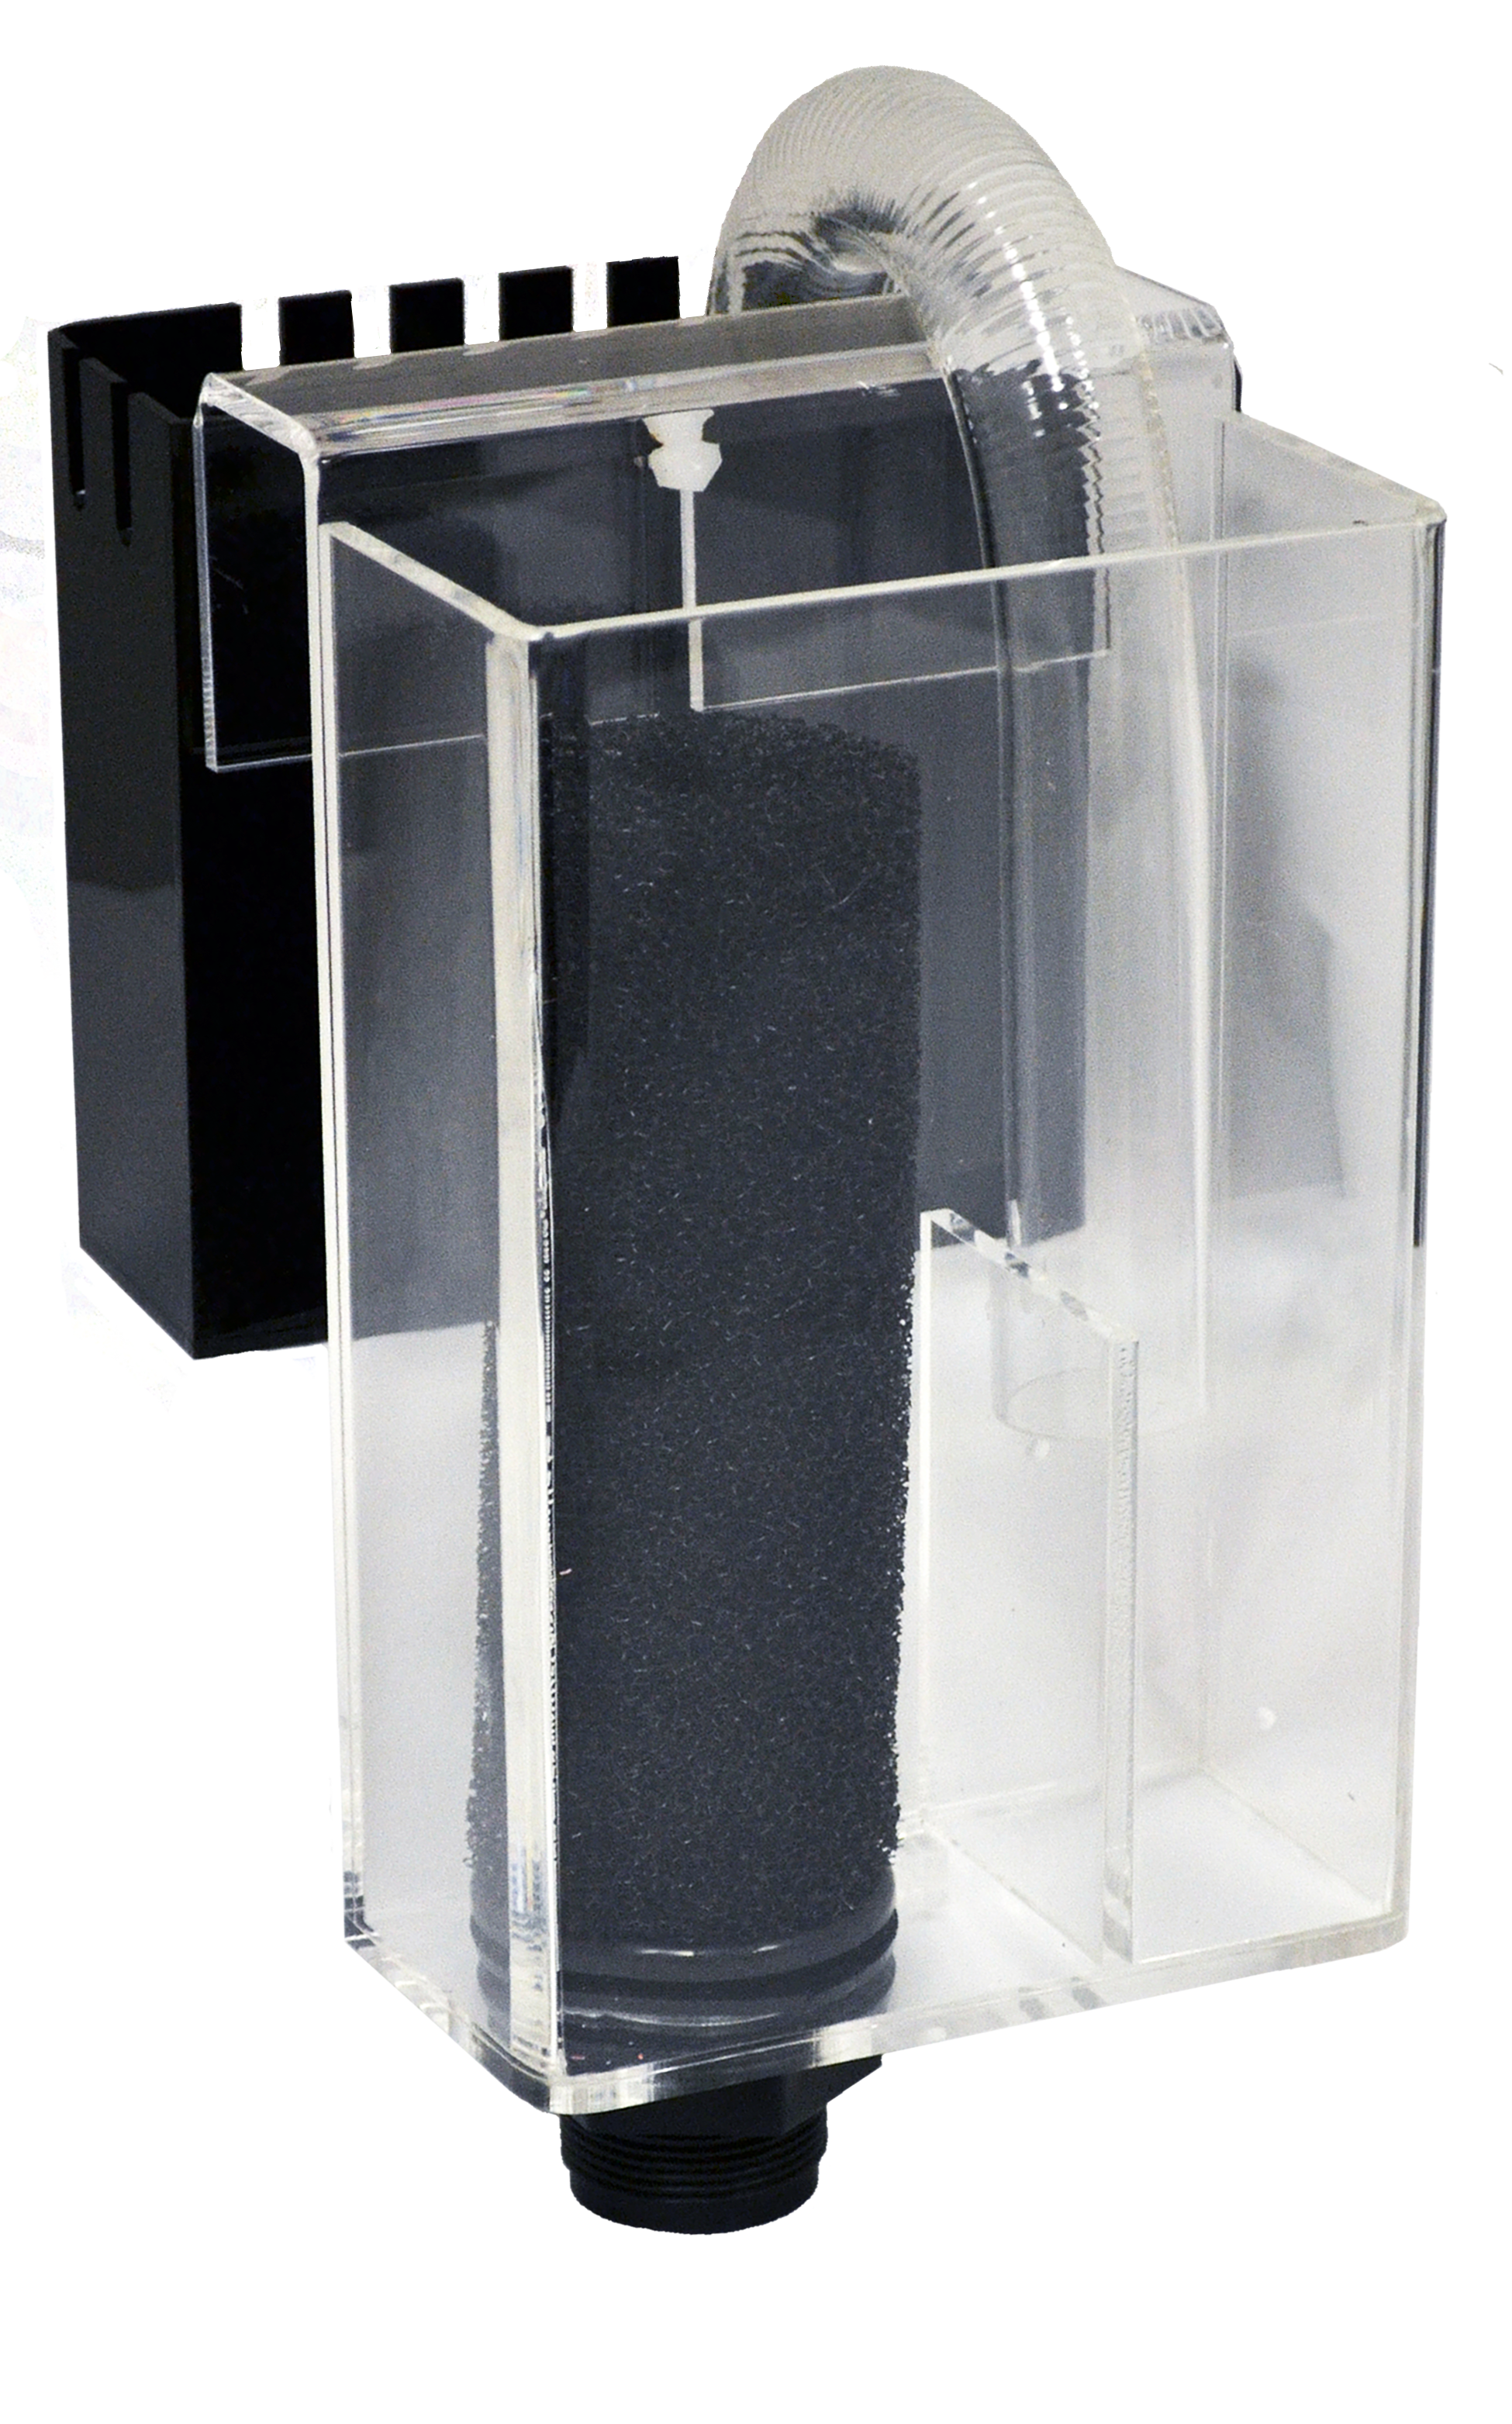 "Nano Overflow System     Optimal Tank Size: 10-20 gallons    SKU: AM87000    UPC#: 7-49729-87000-5    Product Size: 4x2.5x8""    Package Size: 6.5x5.25x9.25""    Package Weight: 2.2lbs.    Master Carton Size: 16.25x13x19""    Master Carton Weight: 26.4lbs.    Case Pack: 12pcs."